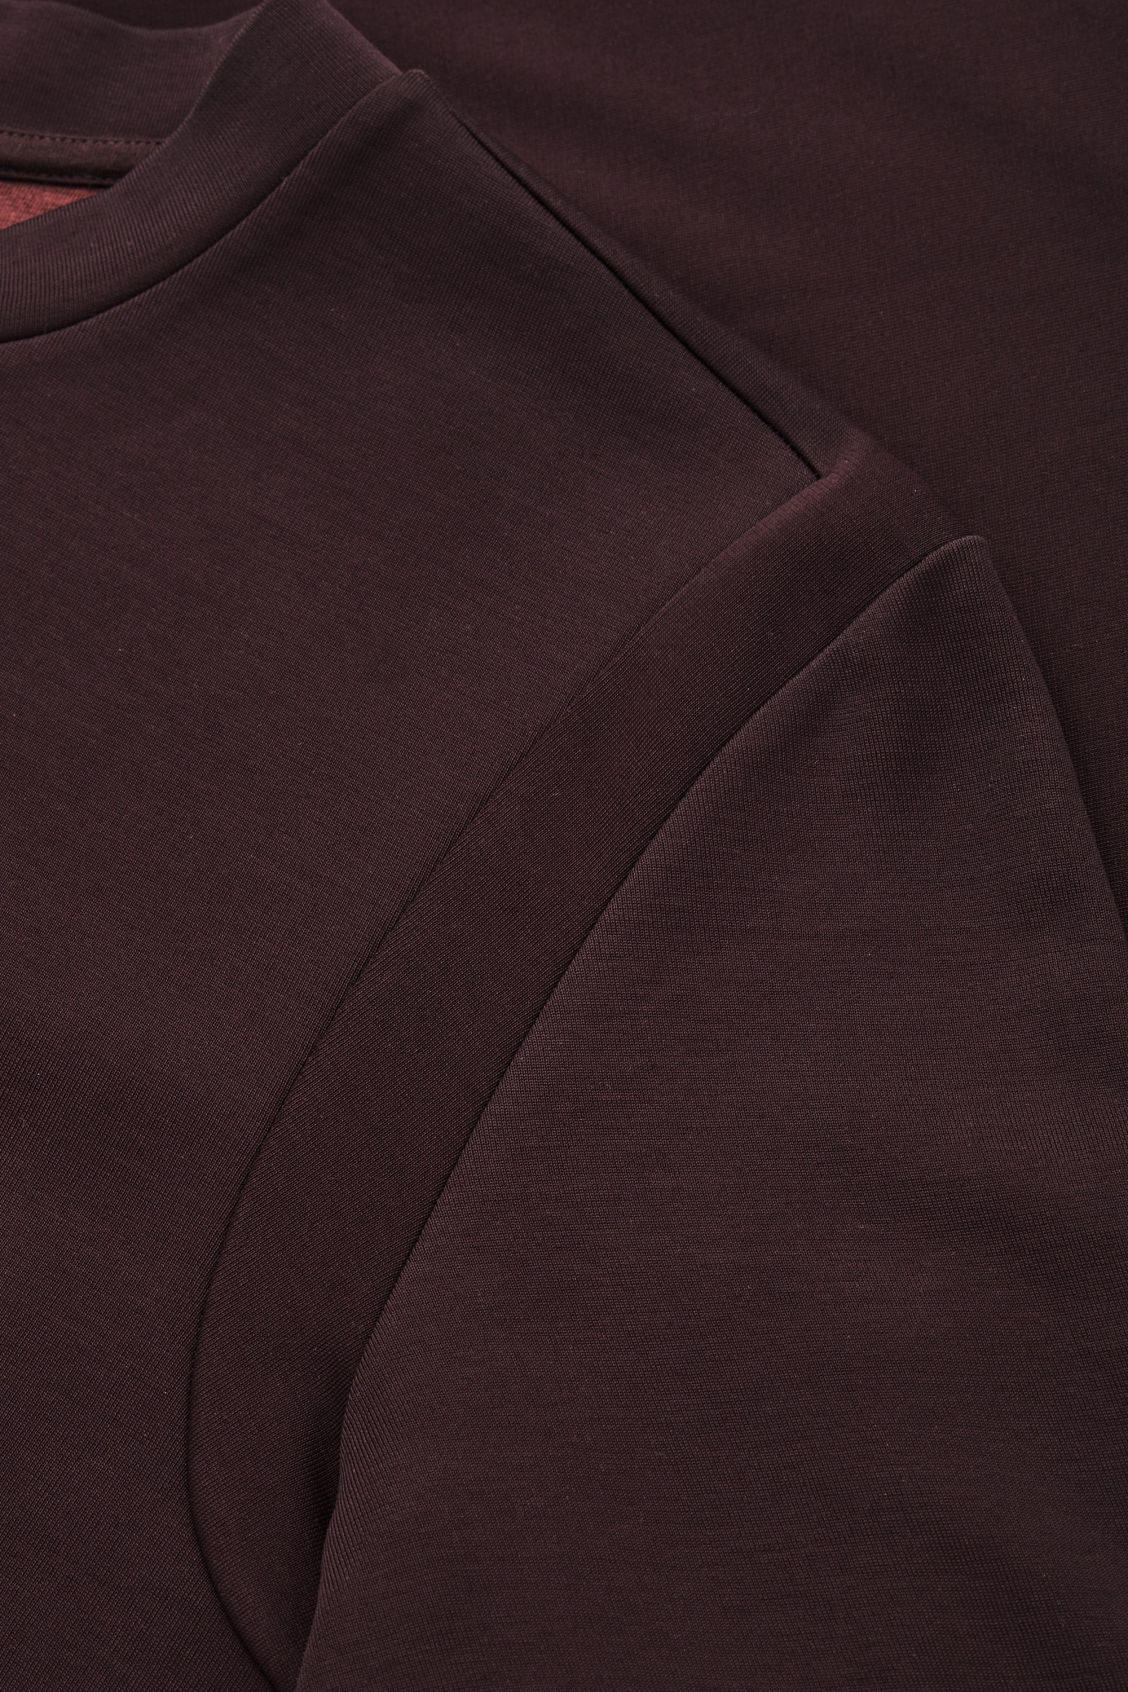 Side image of Cos jersey t-shirt with seam covers in brown